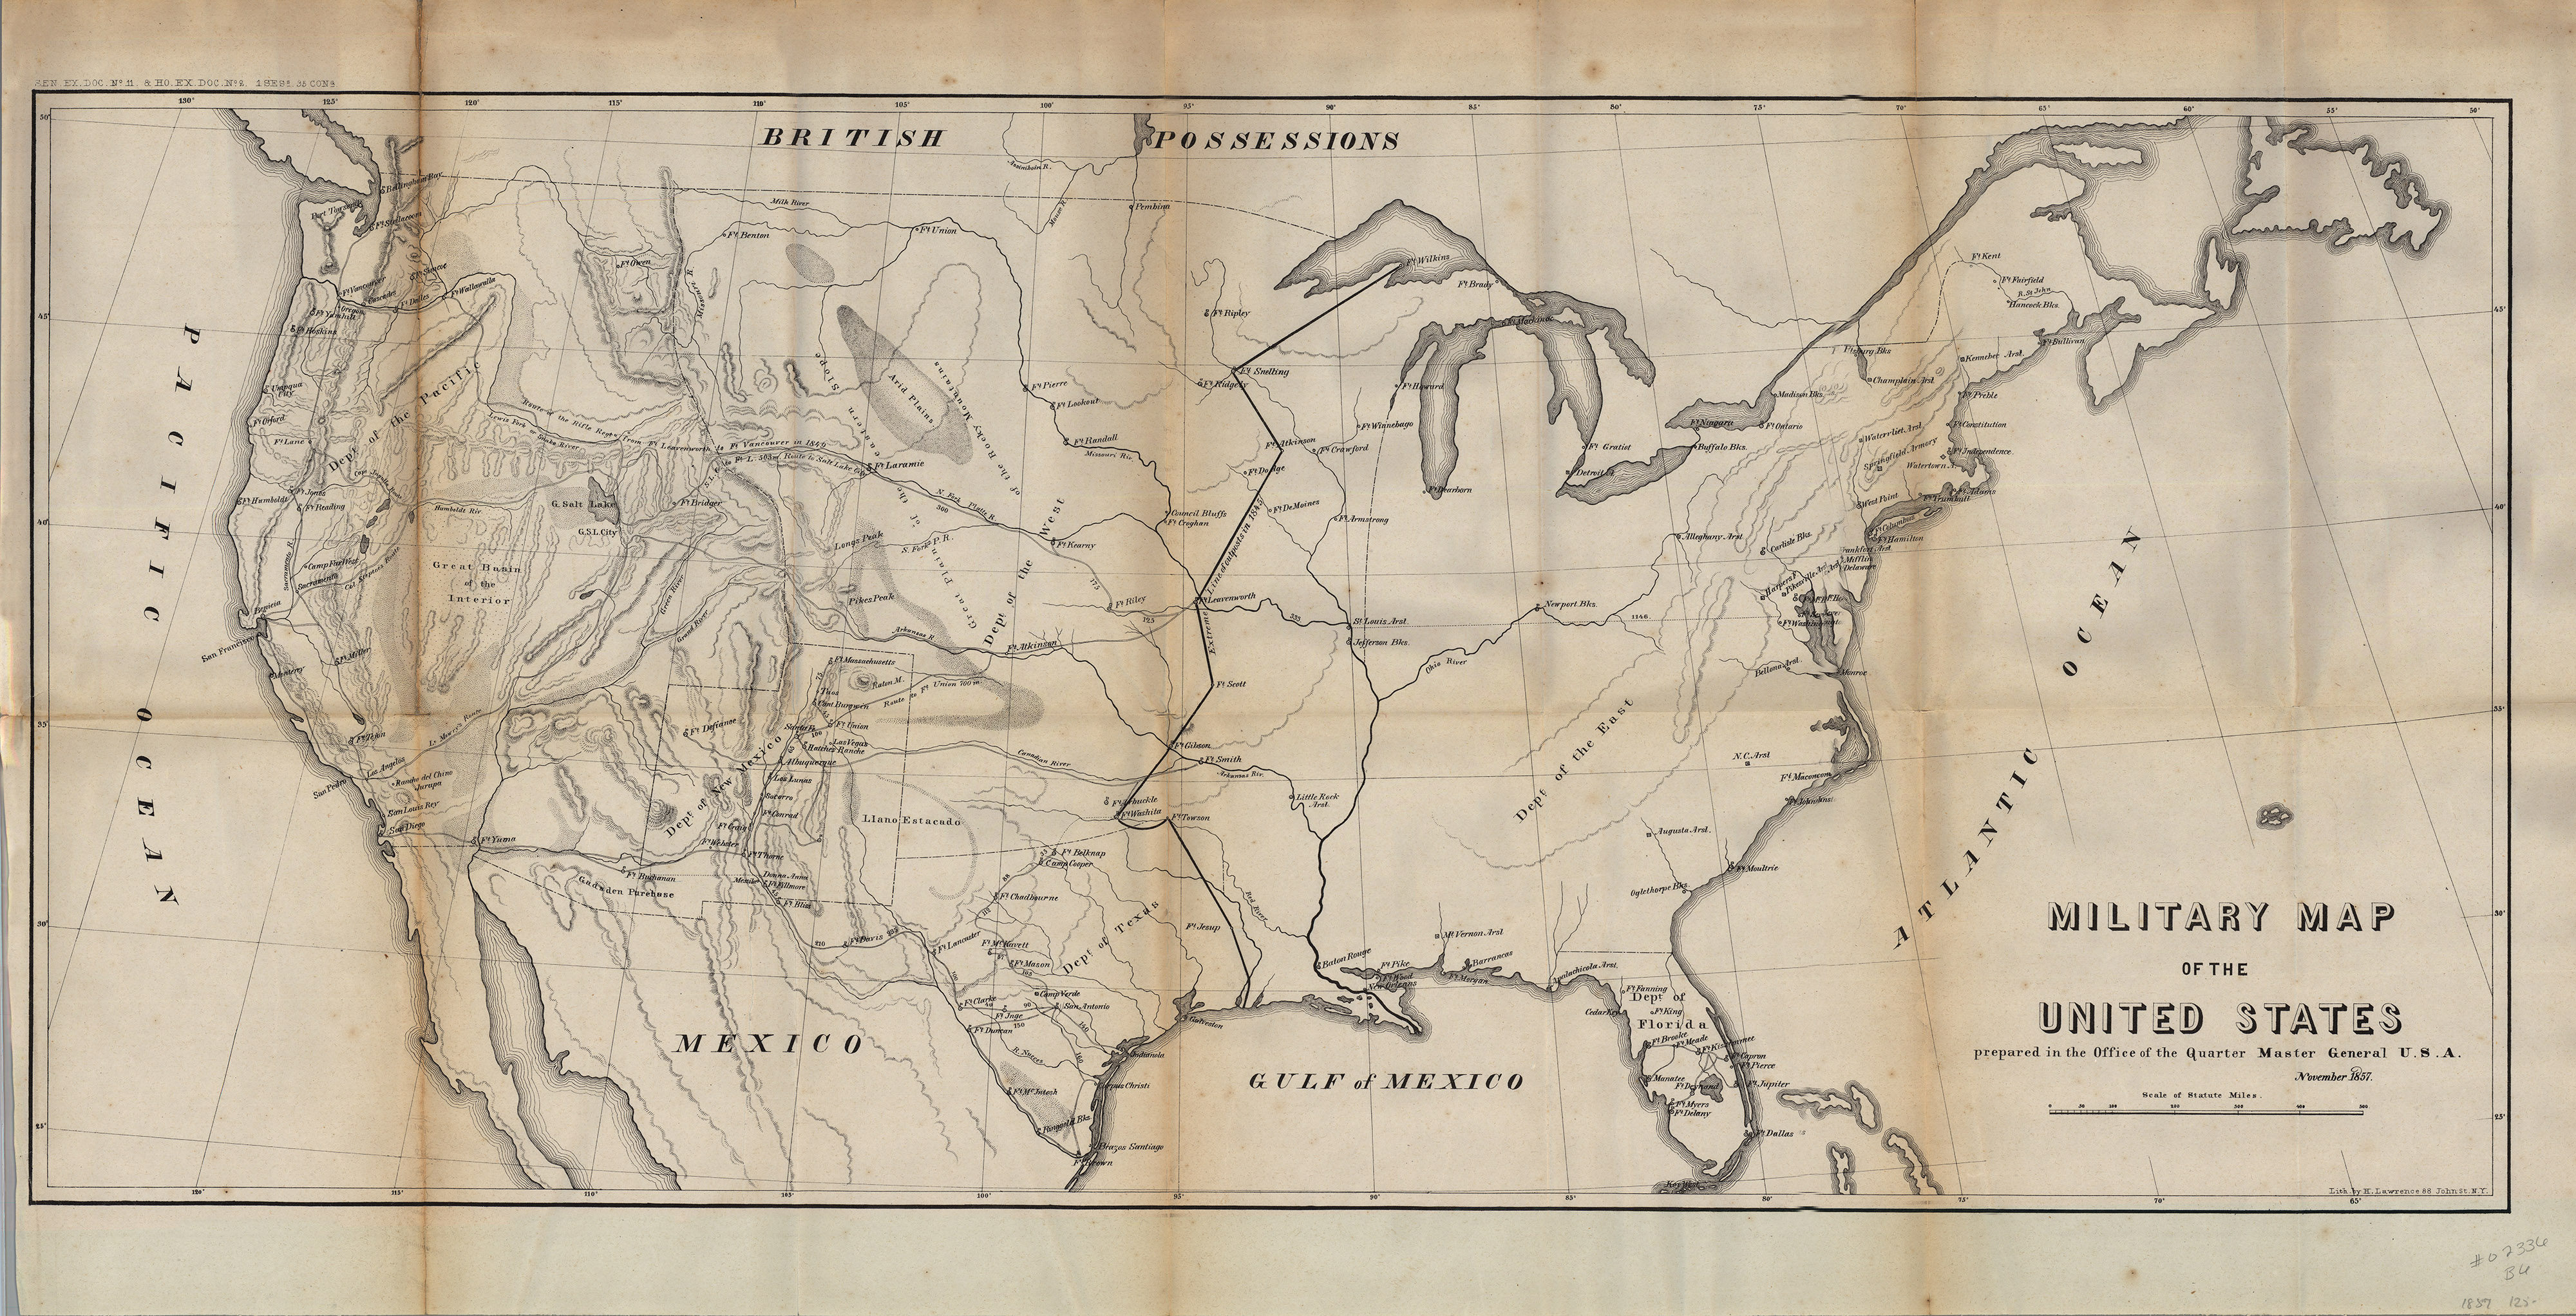 Military Map of the United States Yana Marty Davis Map Collection